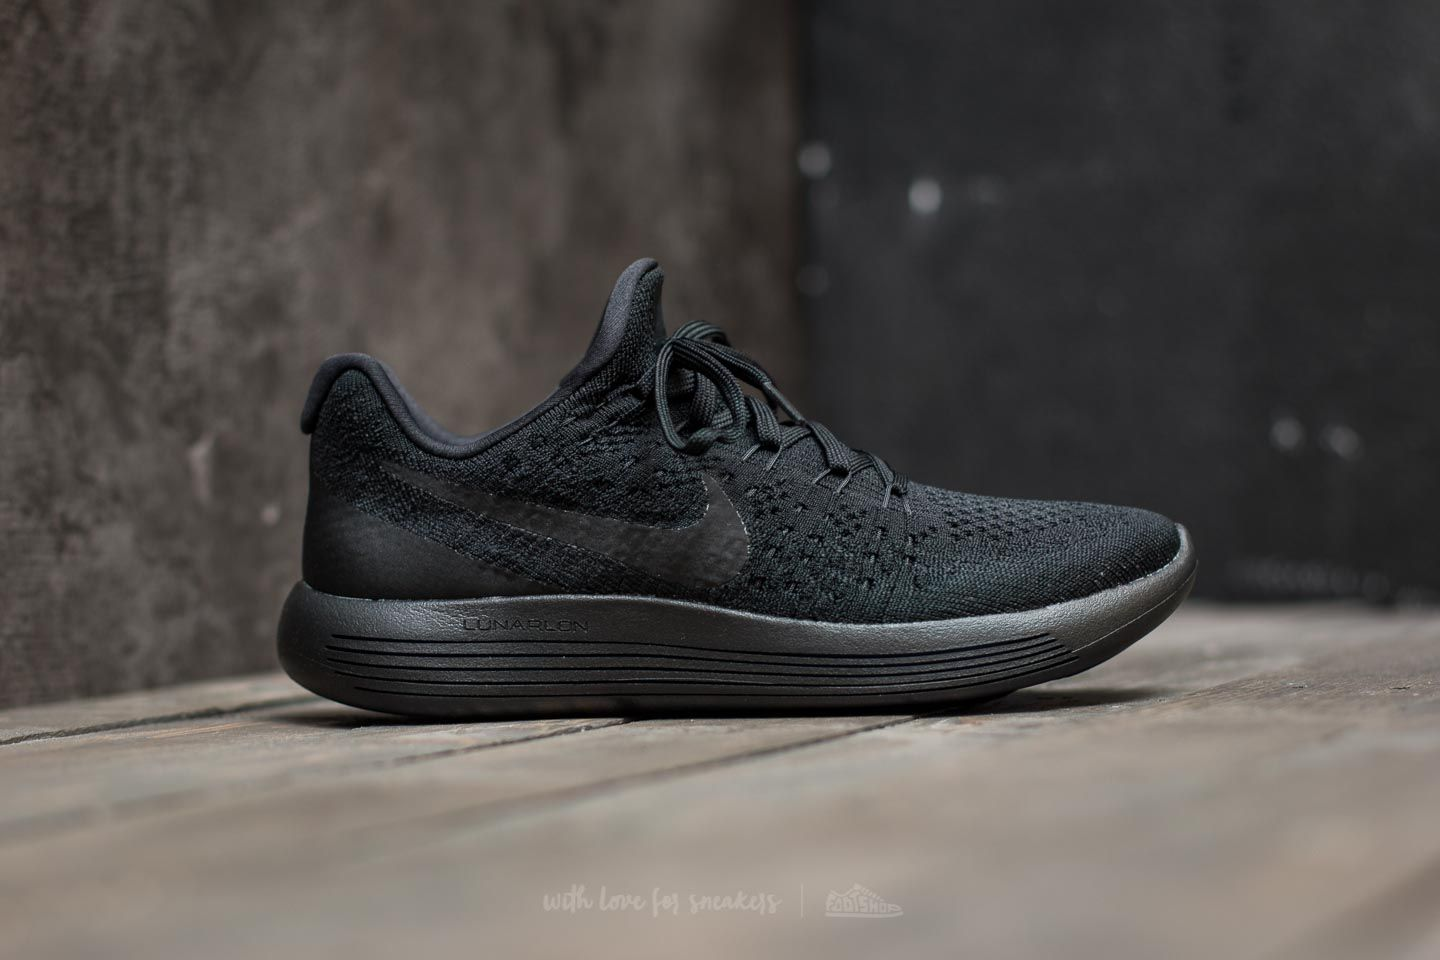 84ba93c36ca04 Nike W Lunarepic Low Flyknit 2 Black  Black-Racer Blue at a great price